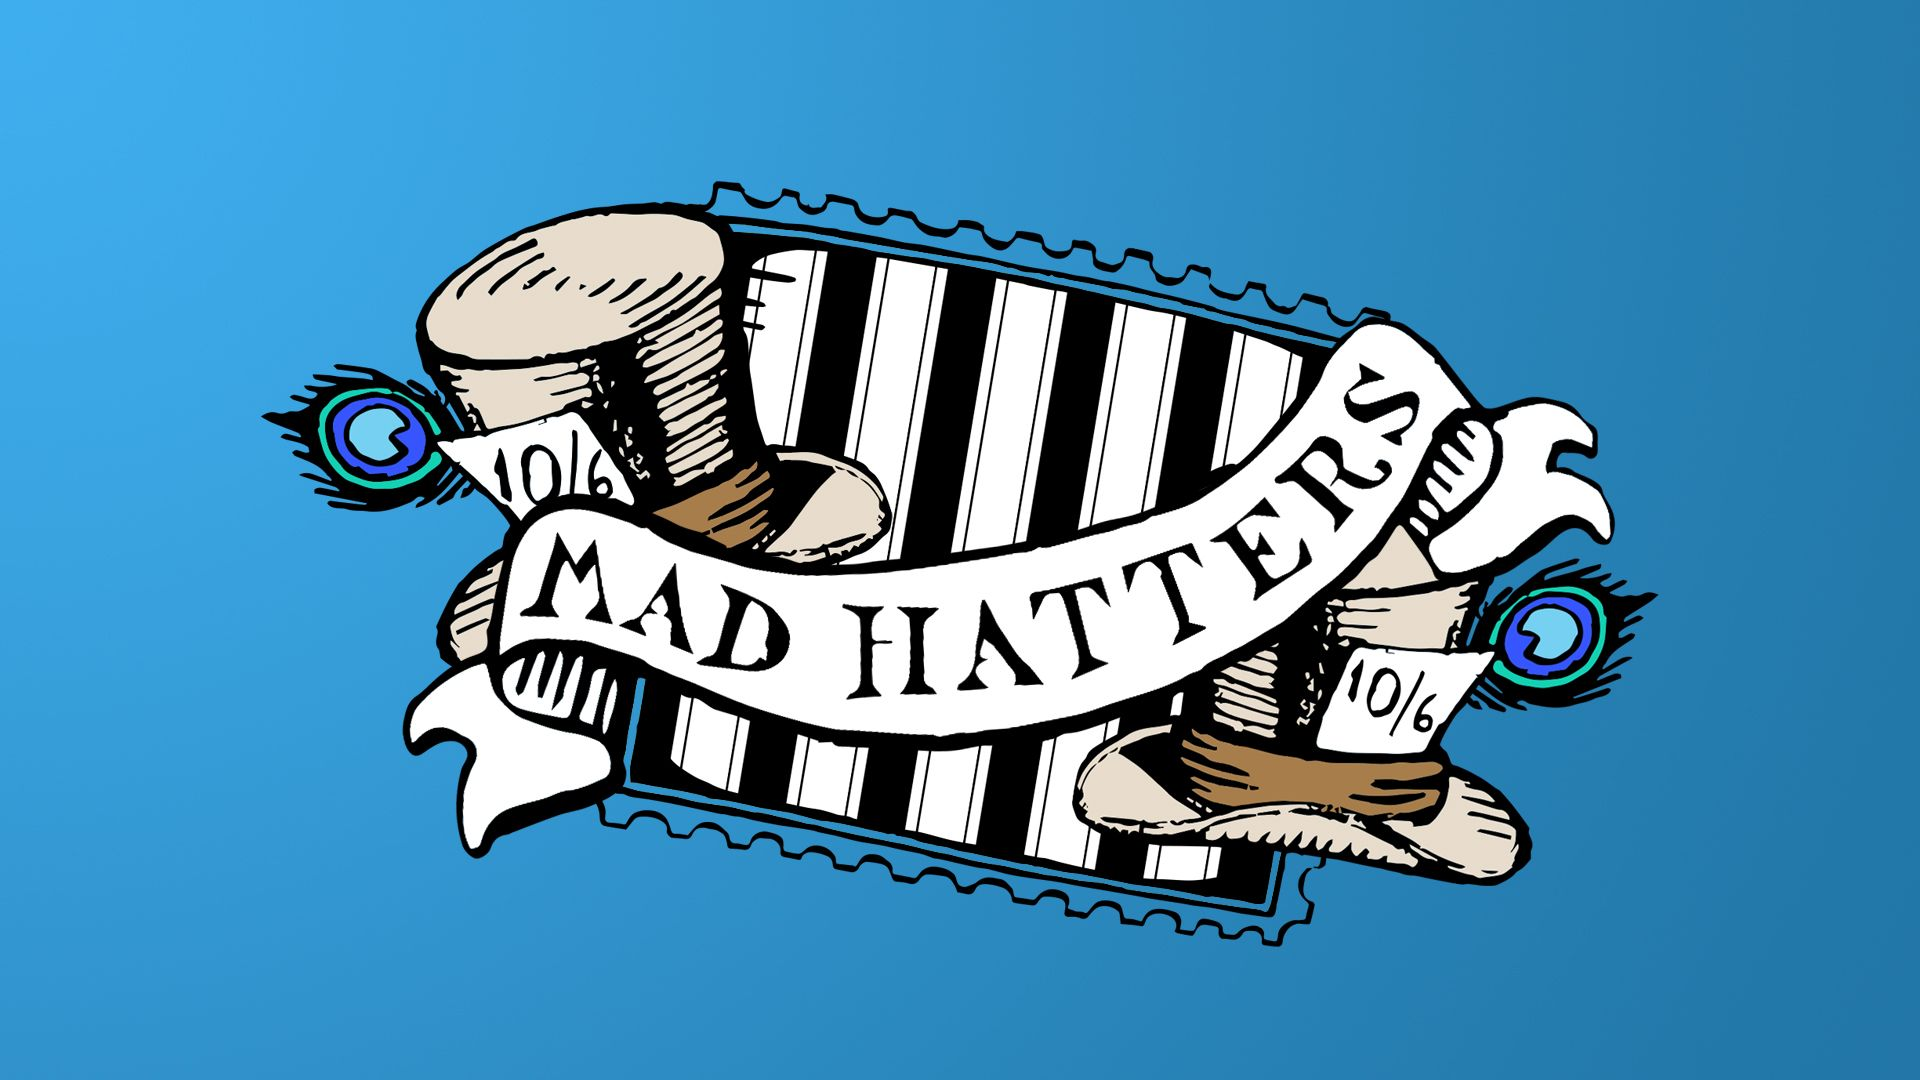 Mad Hatters Brighton